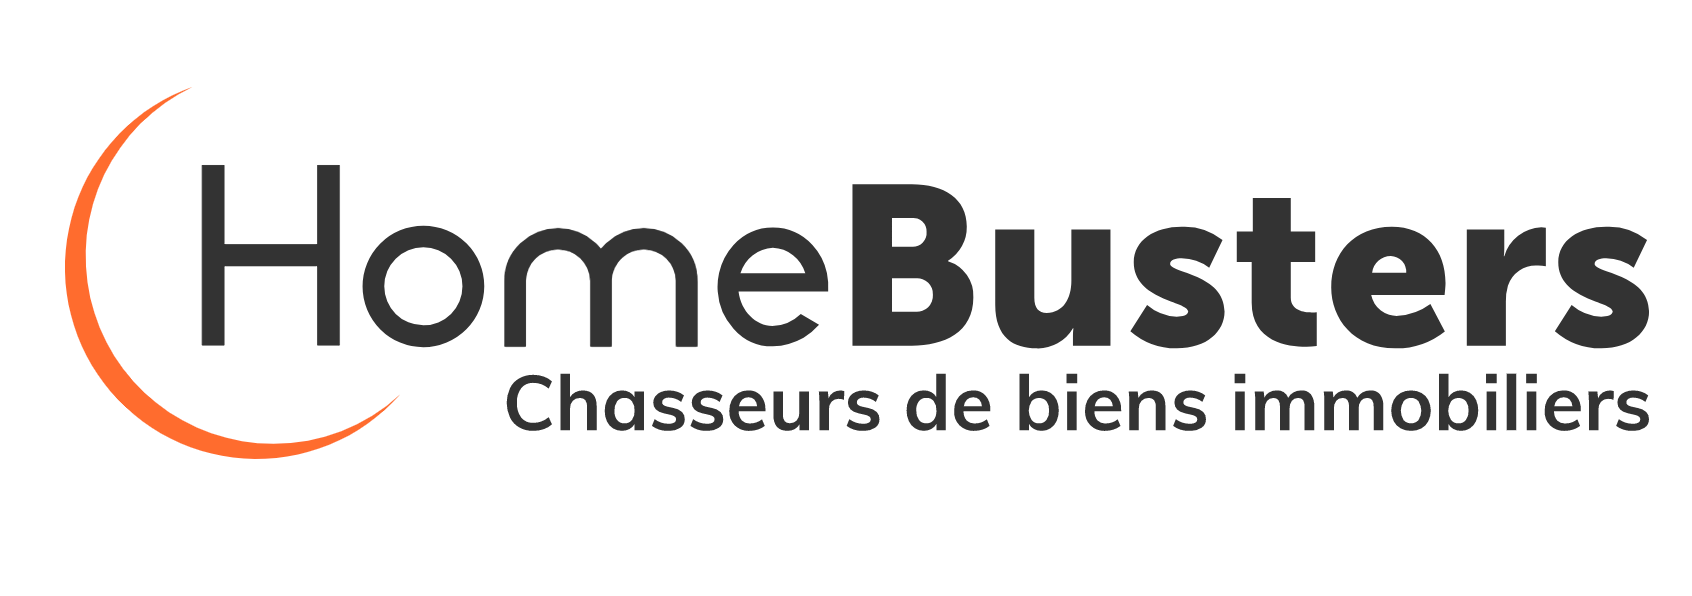 Logo Home Busters